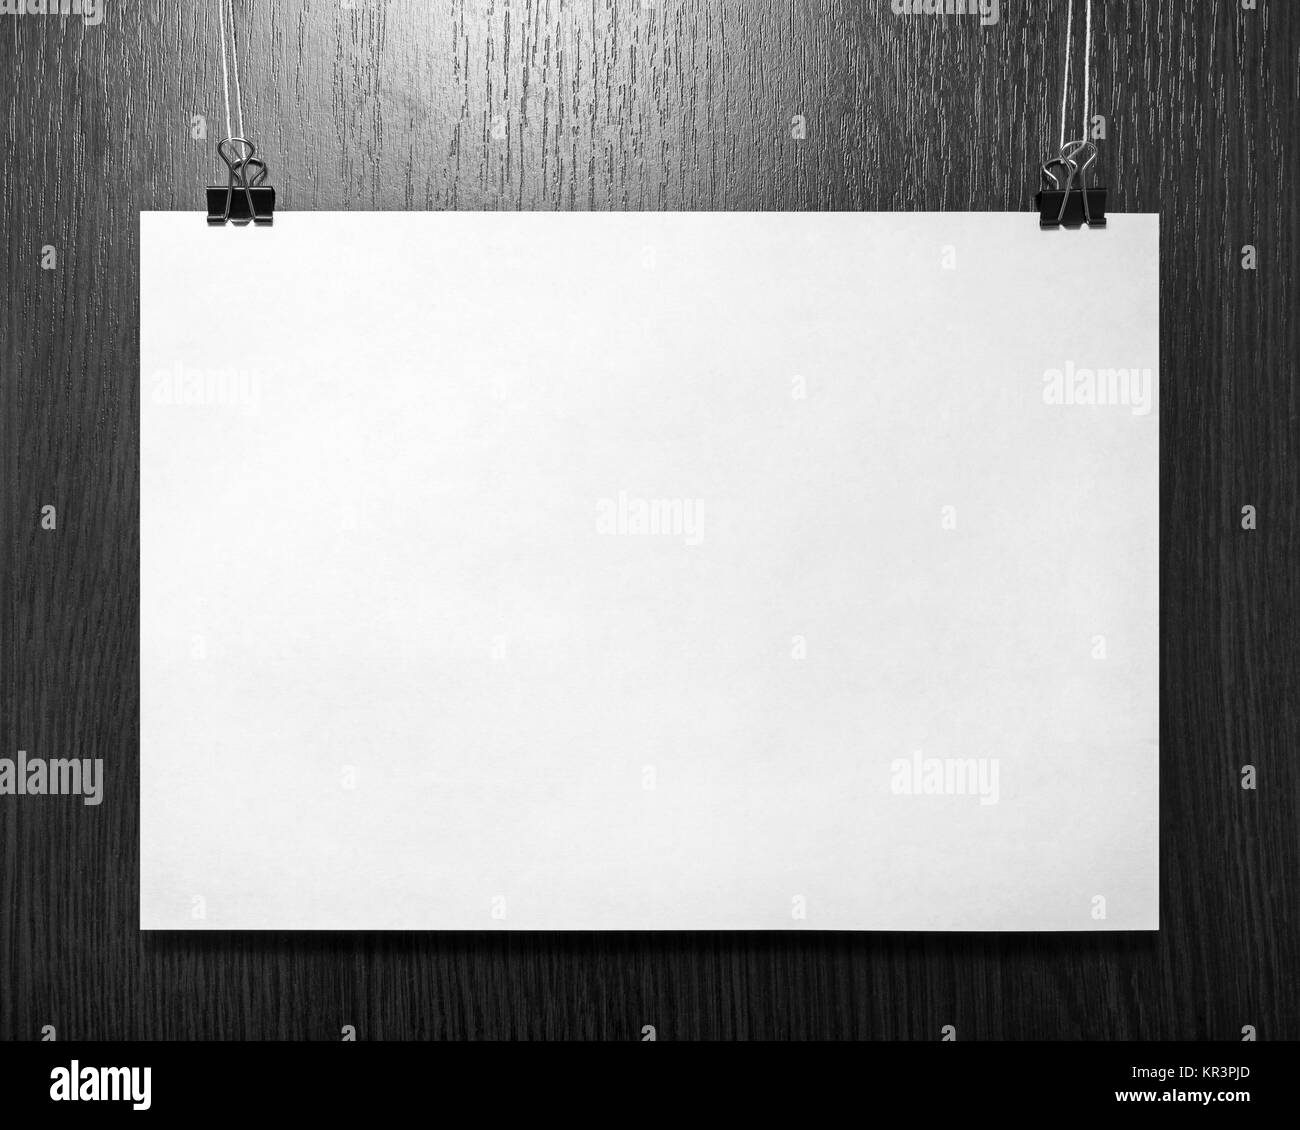 Blank paper poster - Stock Image